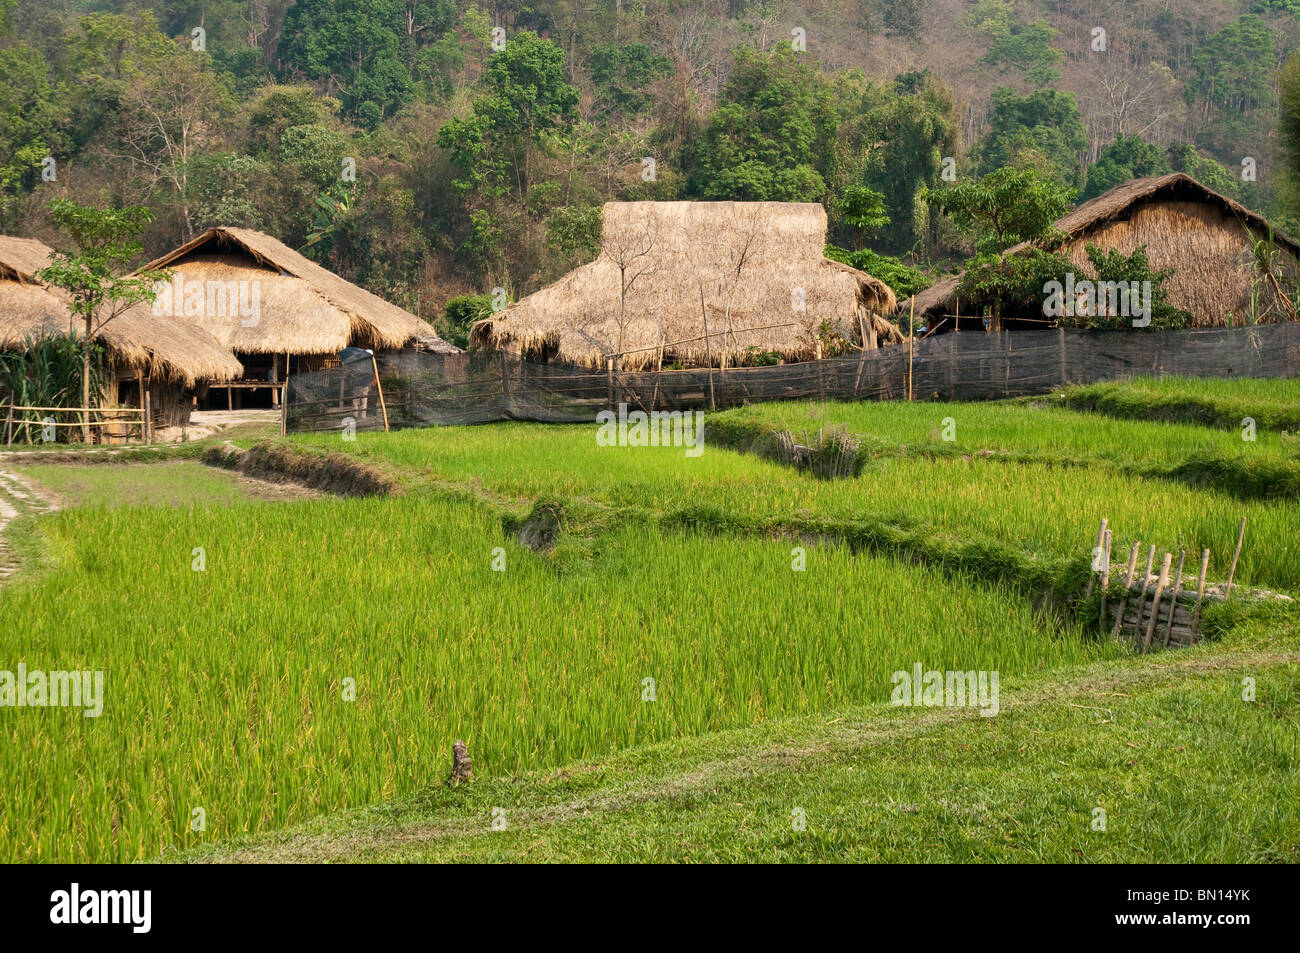 Rice paddies and houses at Baan Tong Luang, village of Hmong people in rural Chiang Mai Province, Thailand. - Stock Image